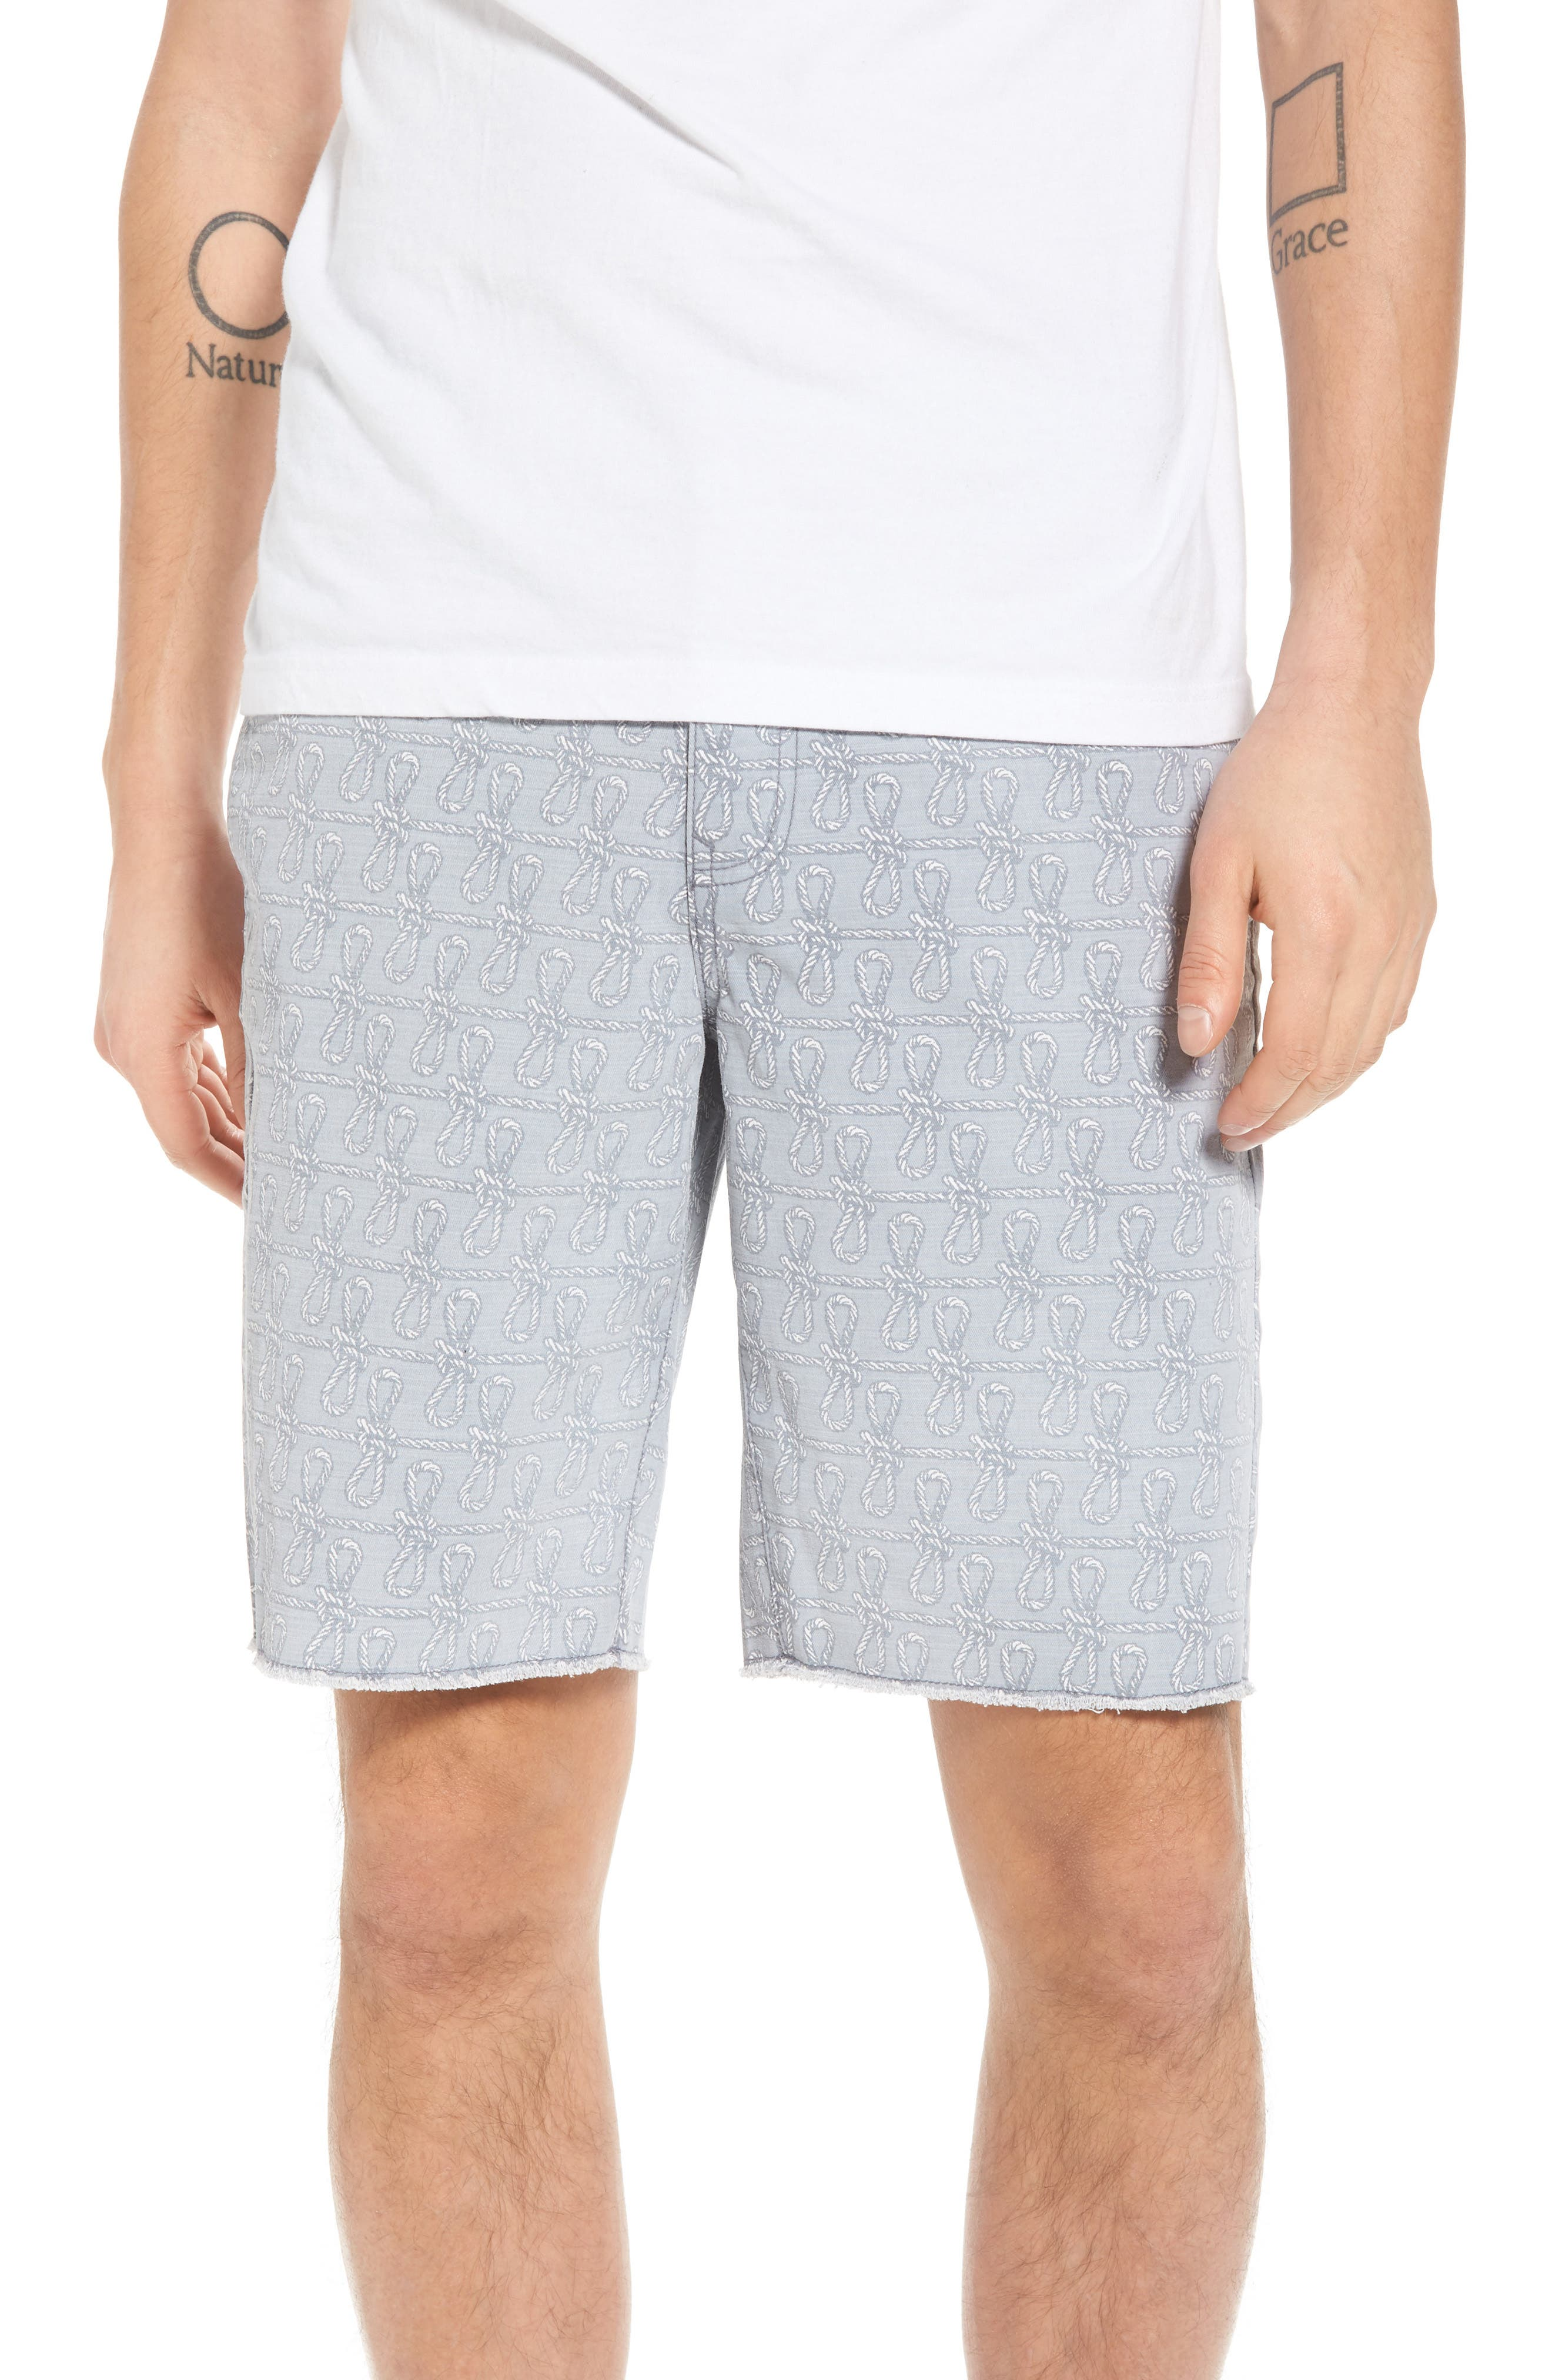 The Rail Print Frost Wash Shorts